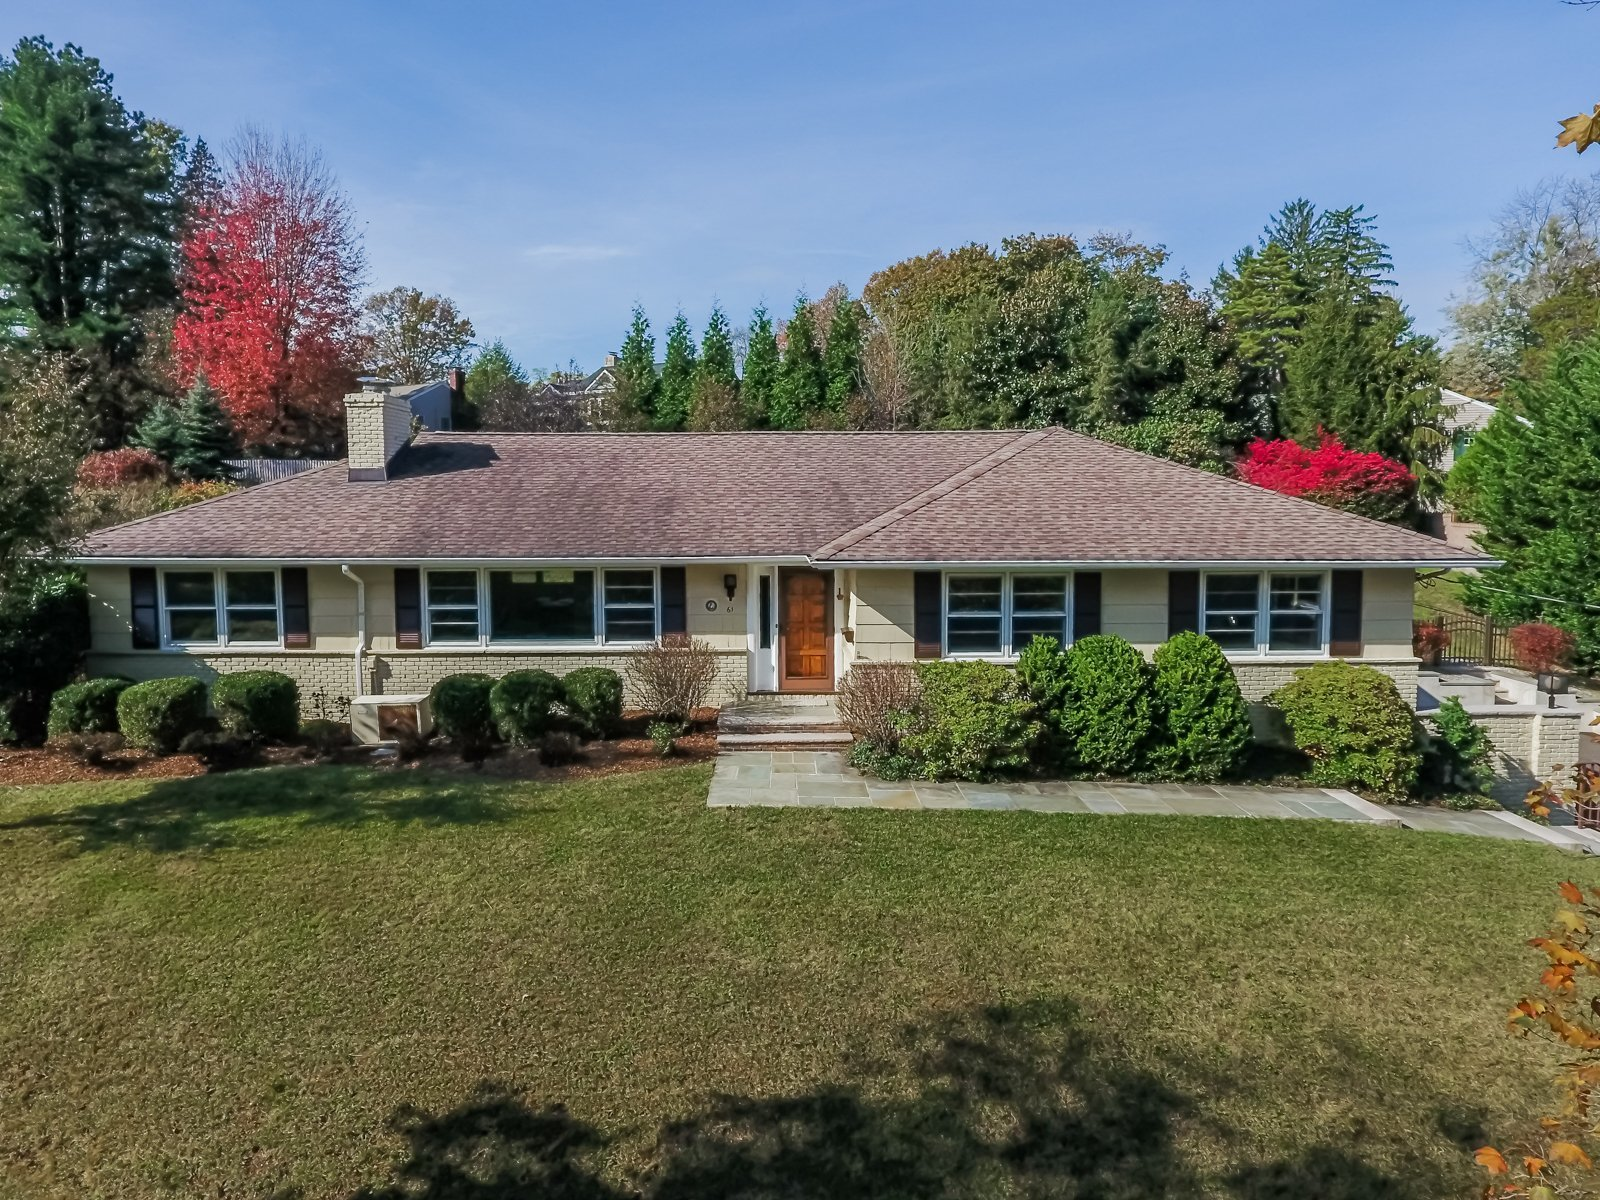 61 Barnsdale Rd, Madison NJ home for sale offered by The Oldendorp Group Realtors in Madison